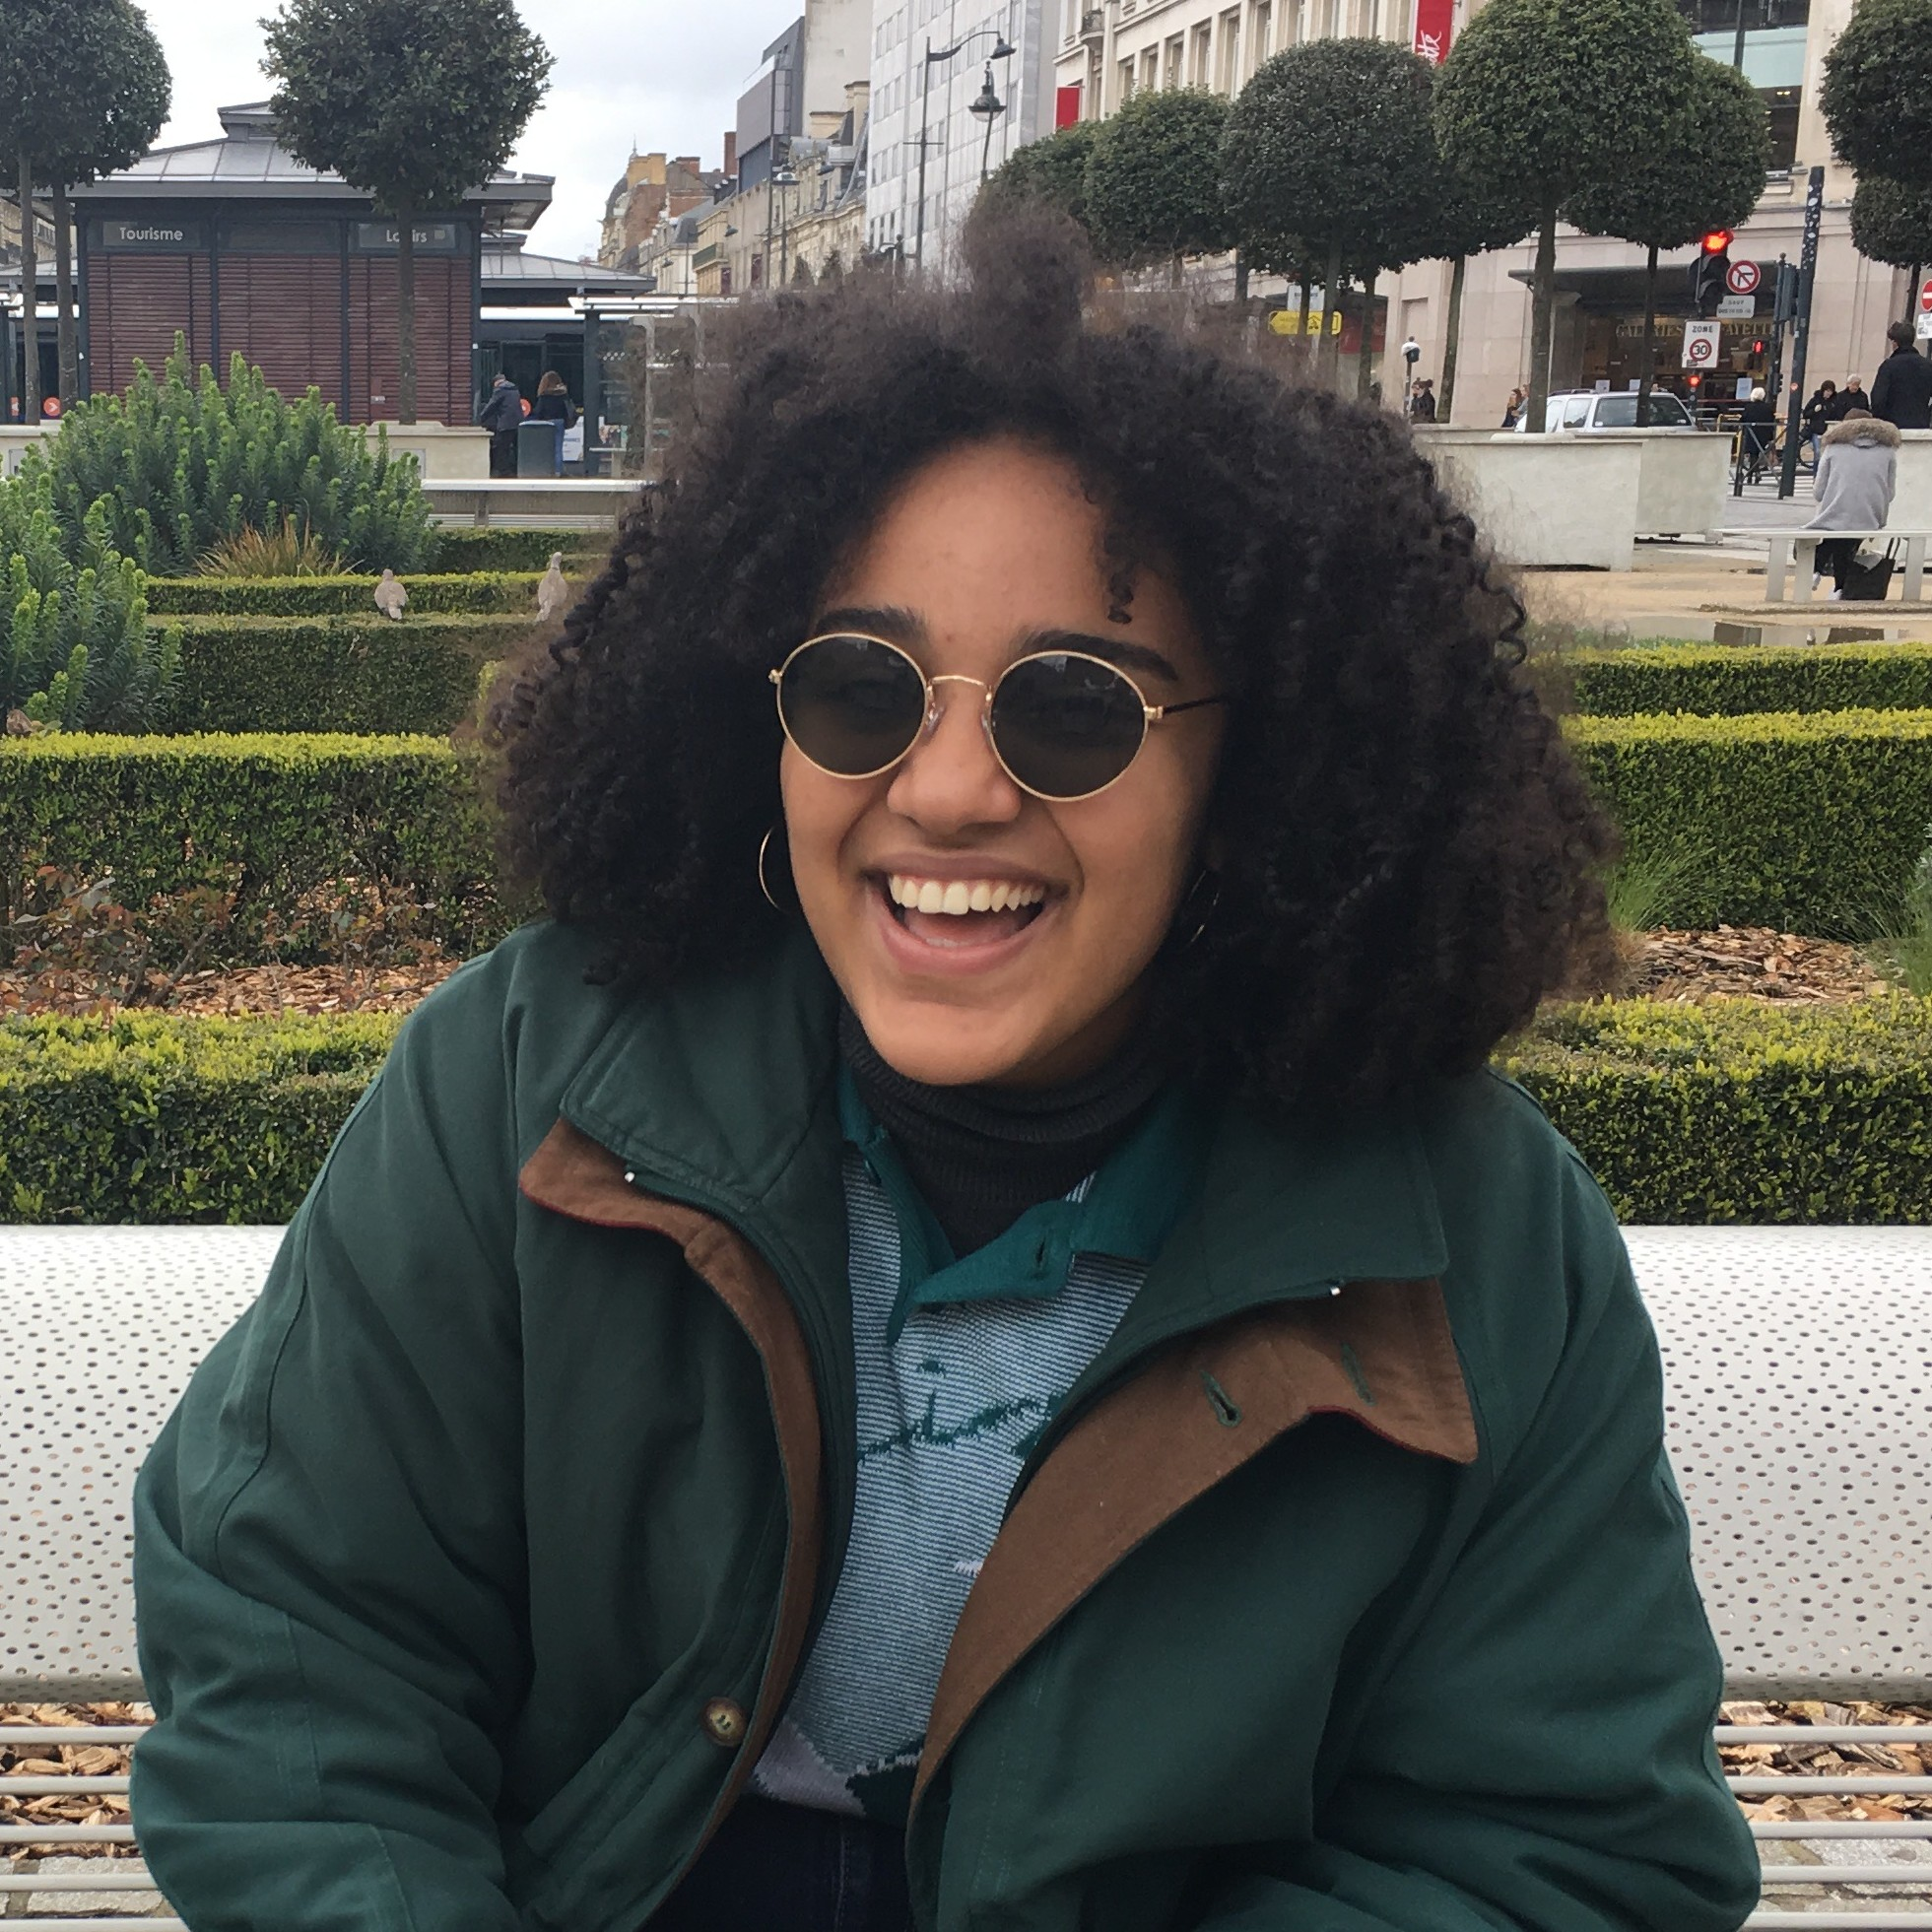 Meet Defne, an SYA France student